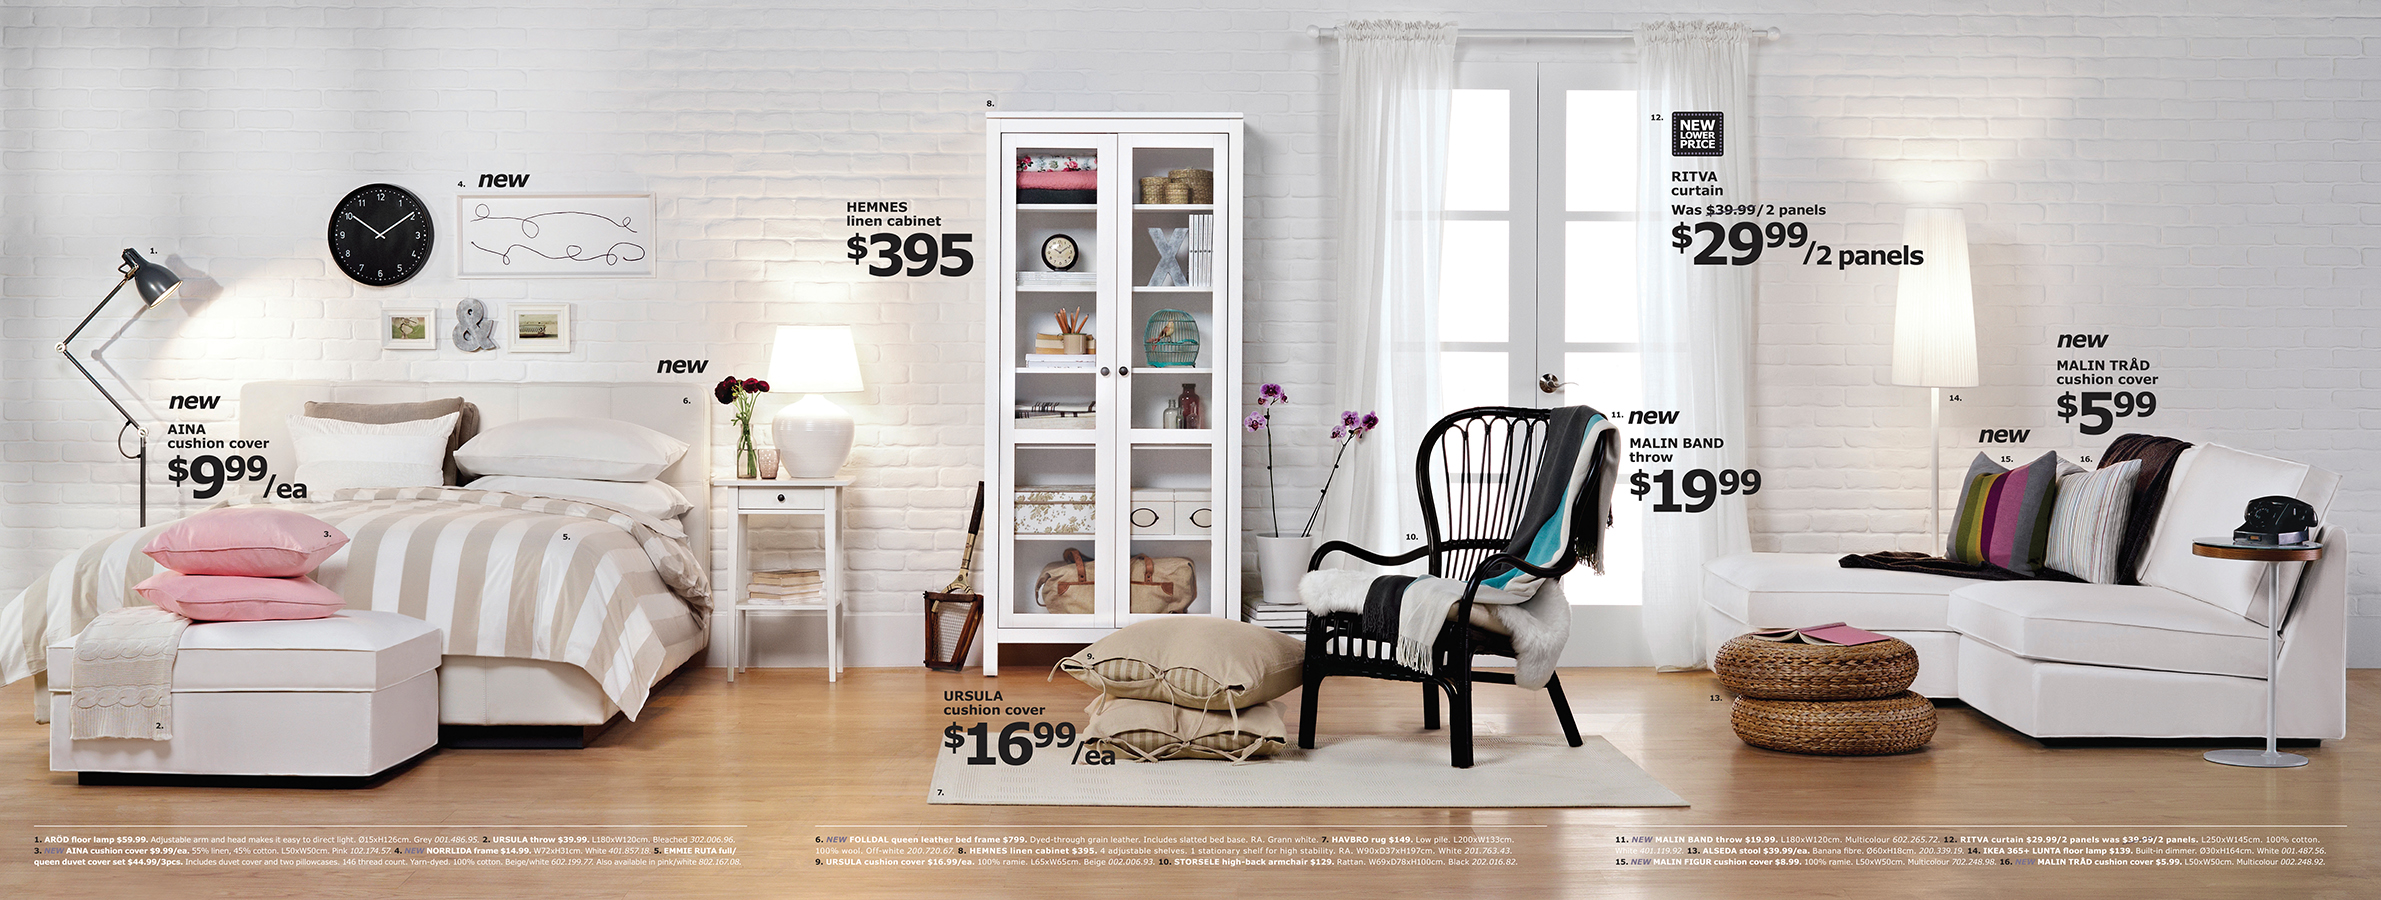 Photography - Ikea Inside Home Advertisement